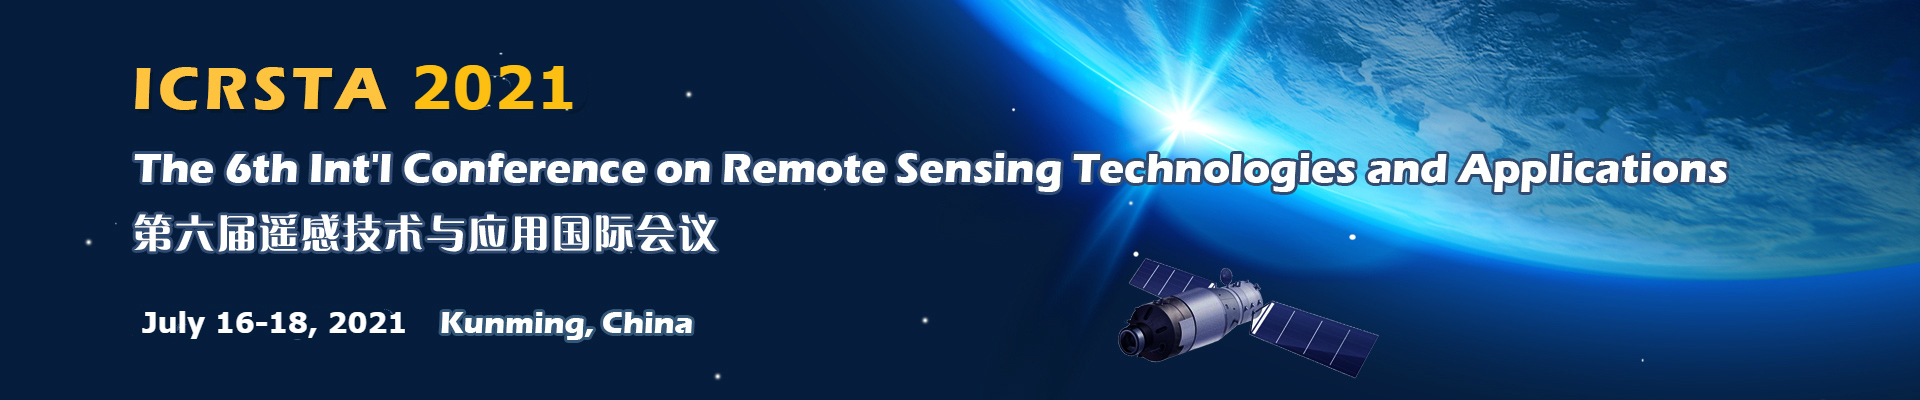 The 6th Int'l Conference on Remote Sensing Technologies and Applications (ICRSTA 2021), Kunming, Yunnan, China